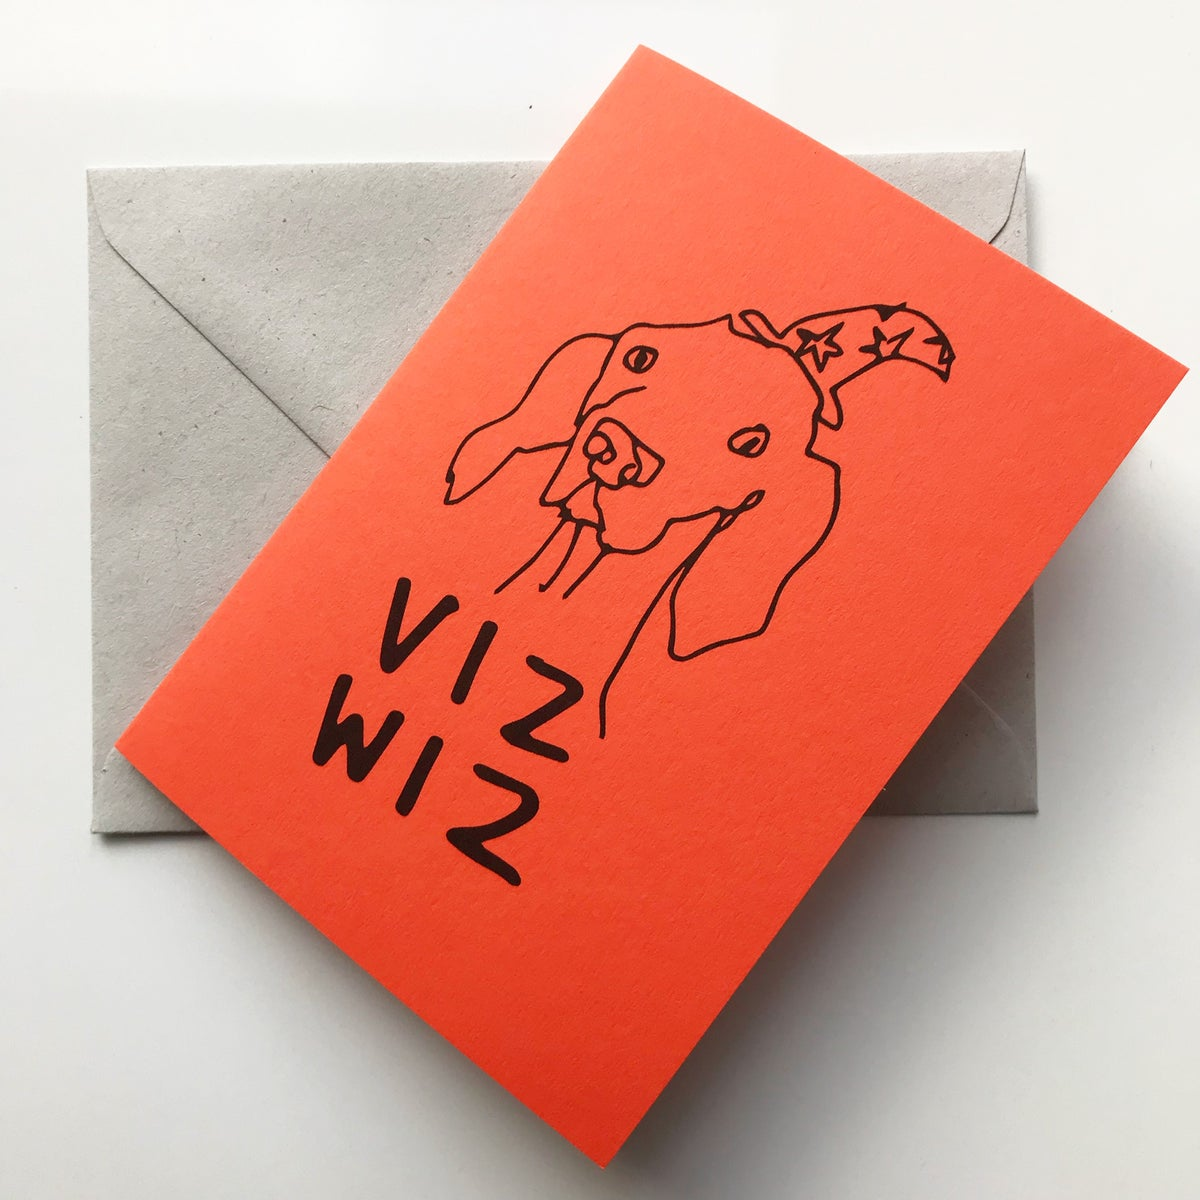 Image of Viz Wiz Vizsla Card in Orange